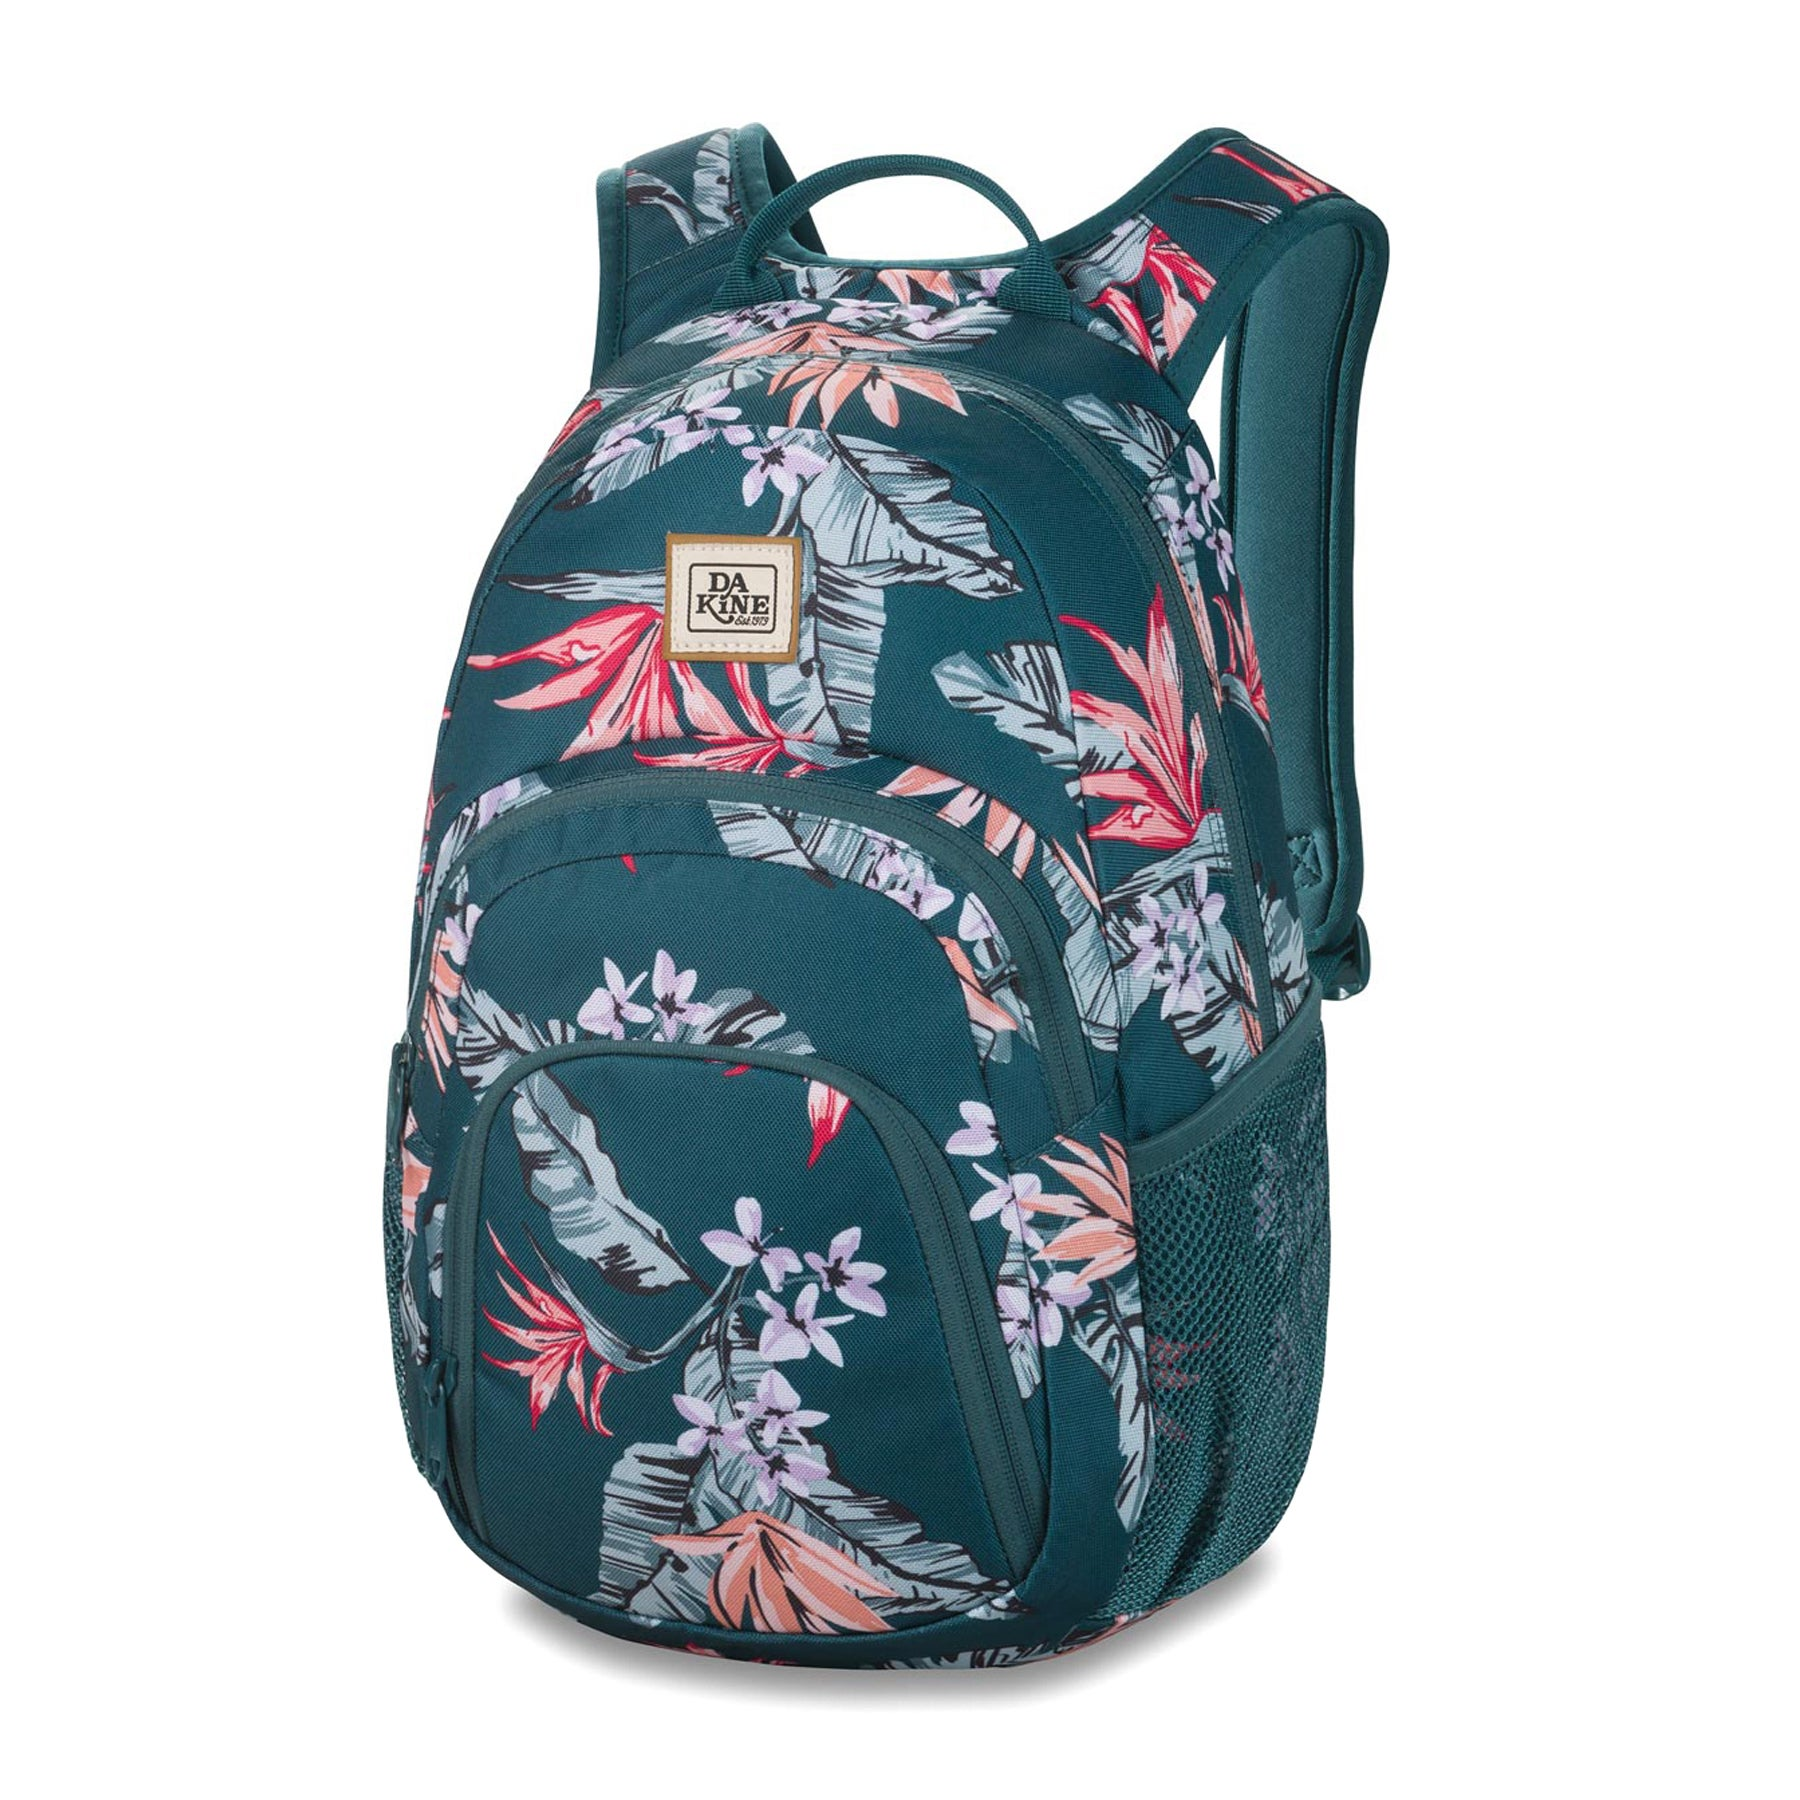 6f109d118b6 Dakine Campus Mini 18l Kids Rucksack - Waimea All Sizes | eBay